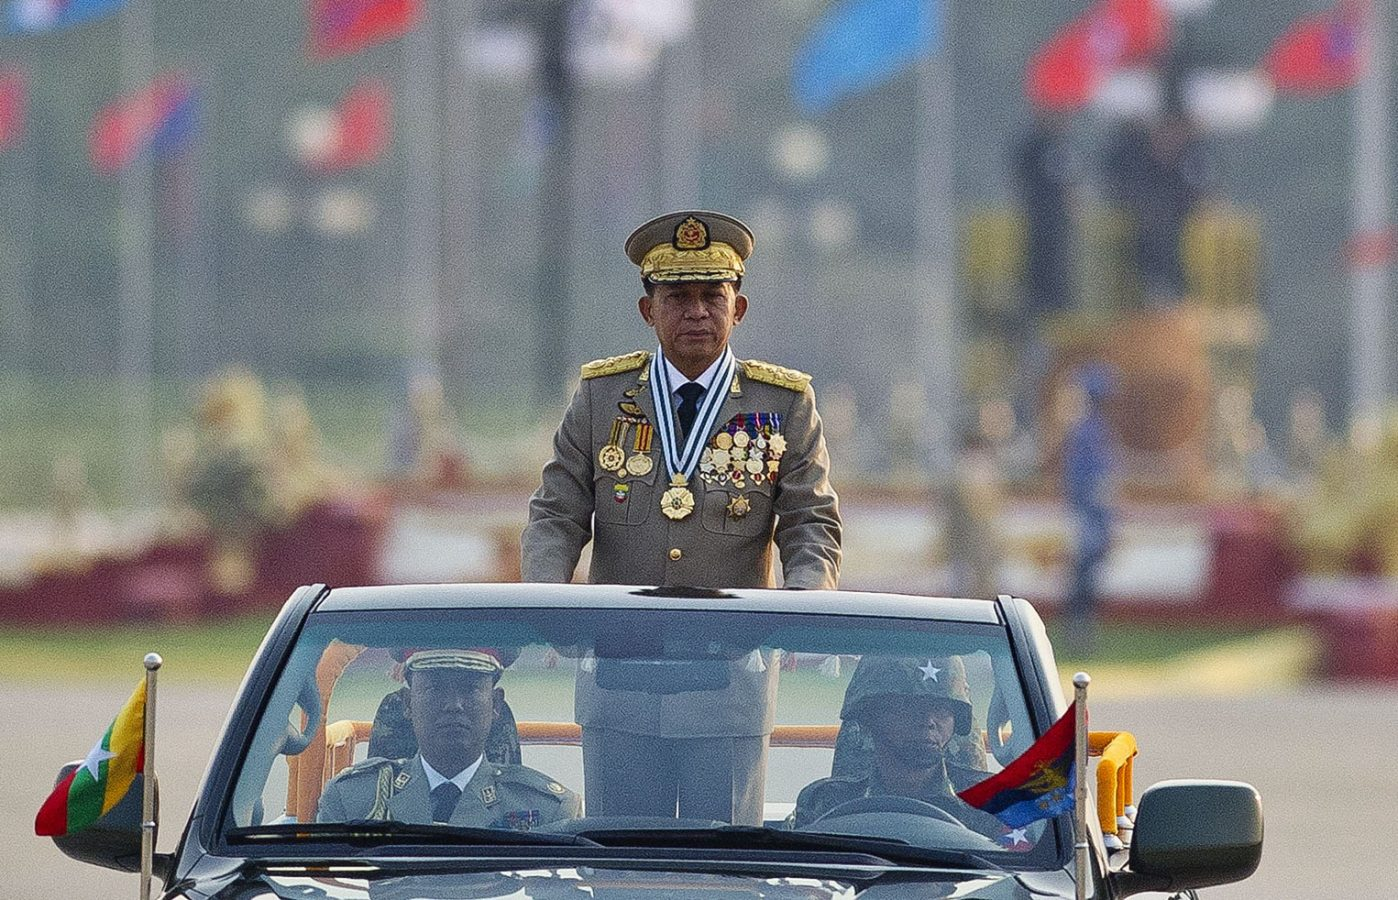 A man in a Myanmar military uniform stands up in an open-top car at a military parade. There are two other people in the car with him, also in military dress. Blurred in the background we can see a line of flags from different countries.